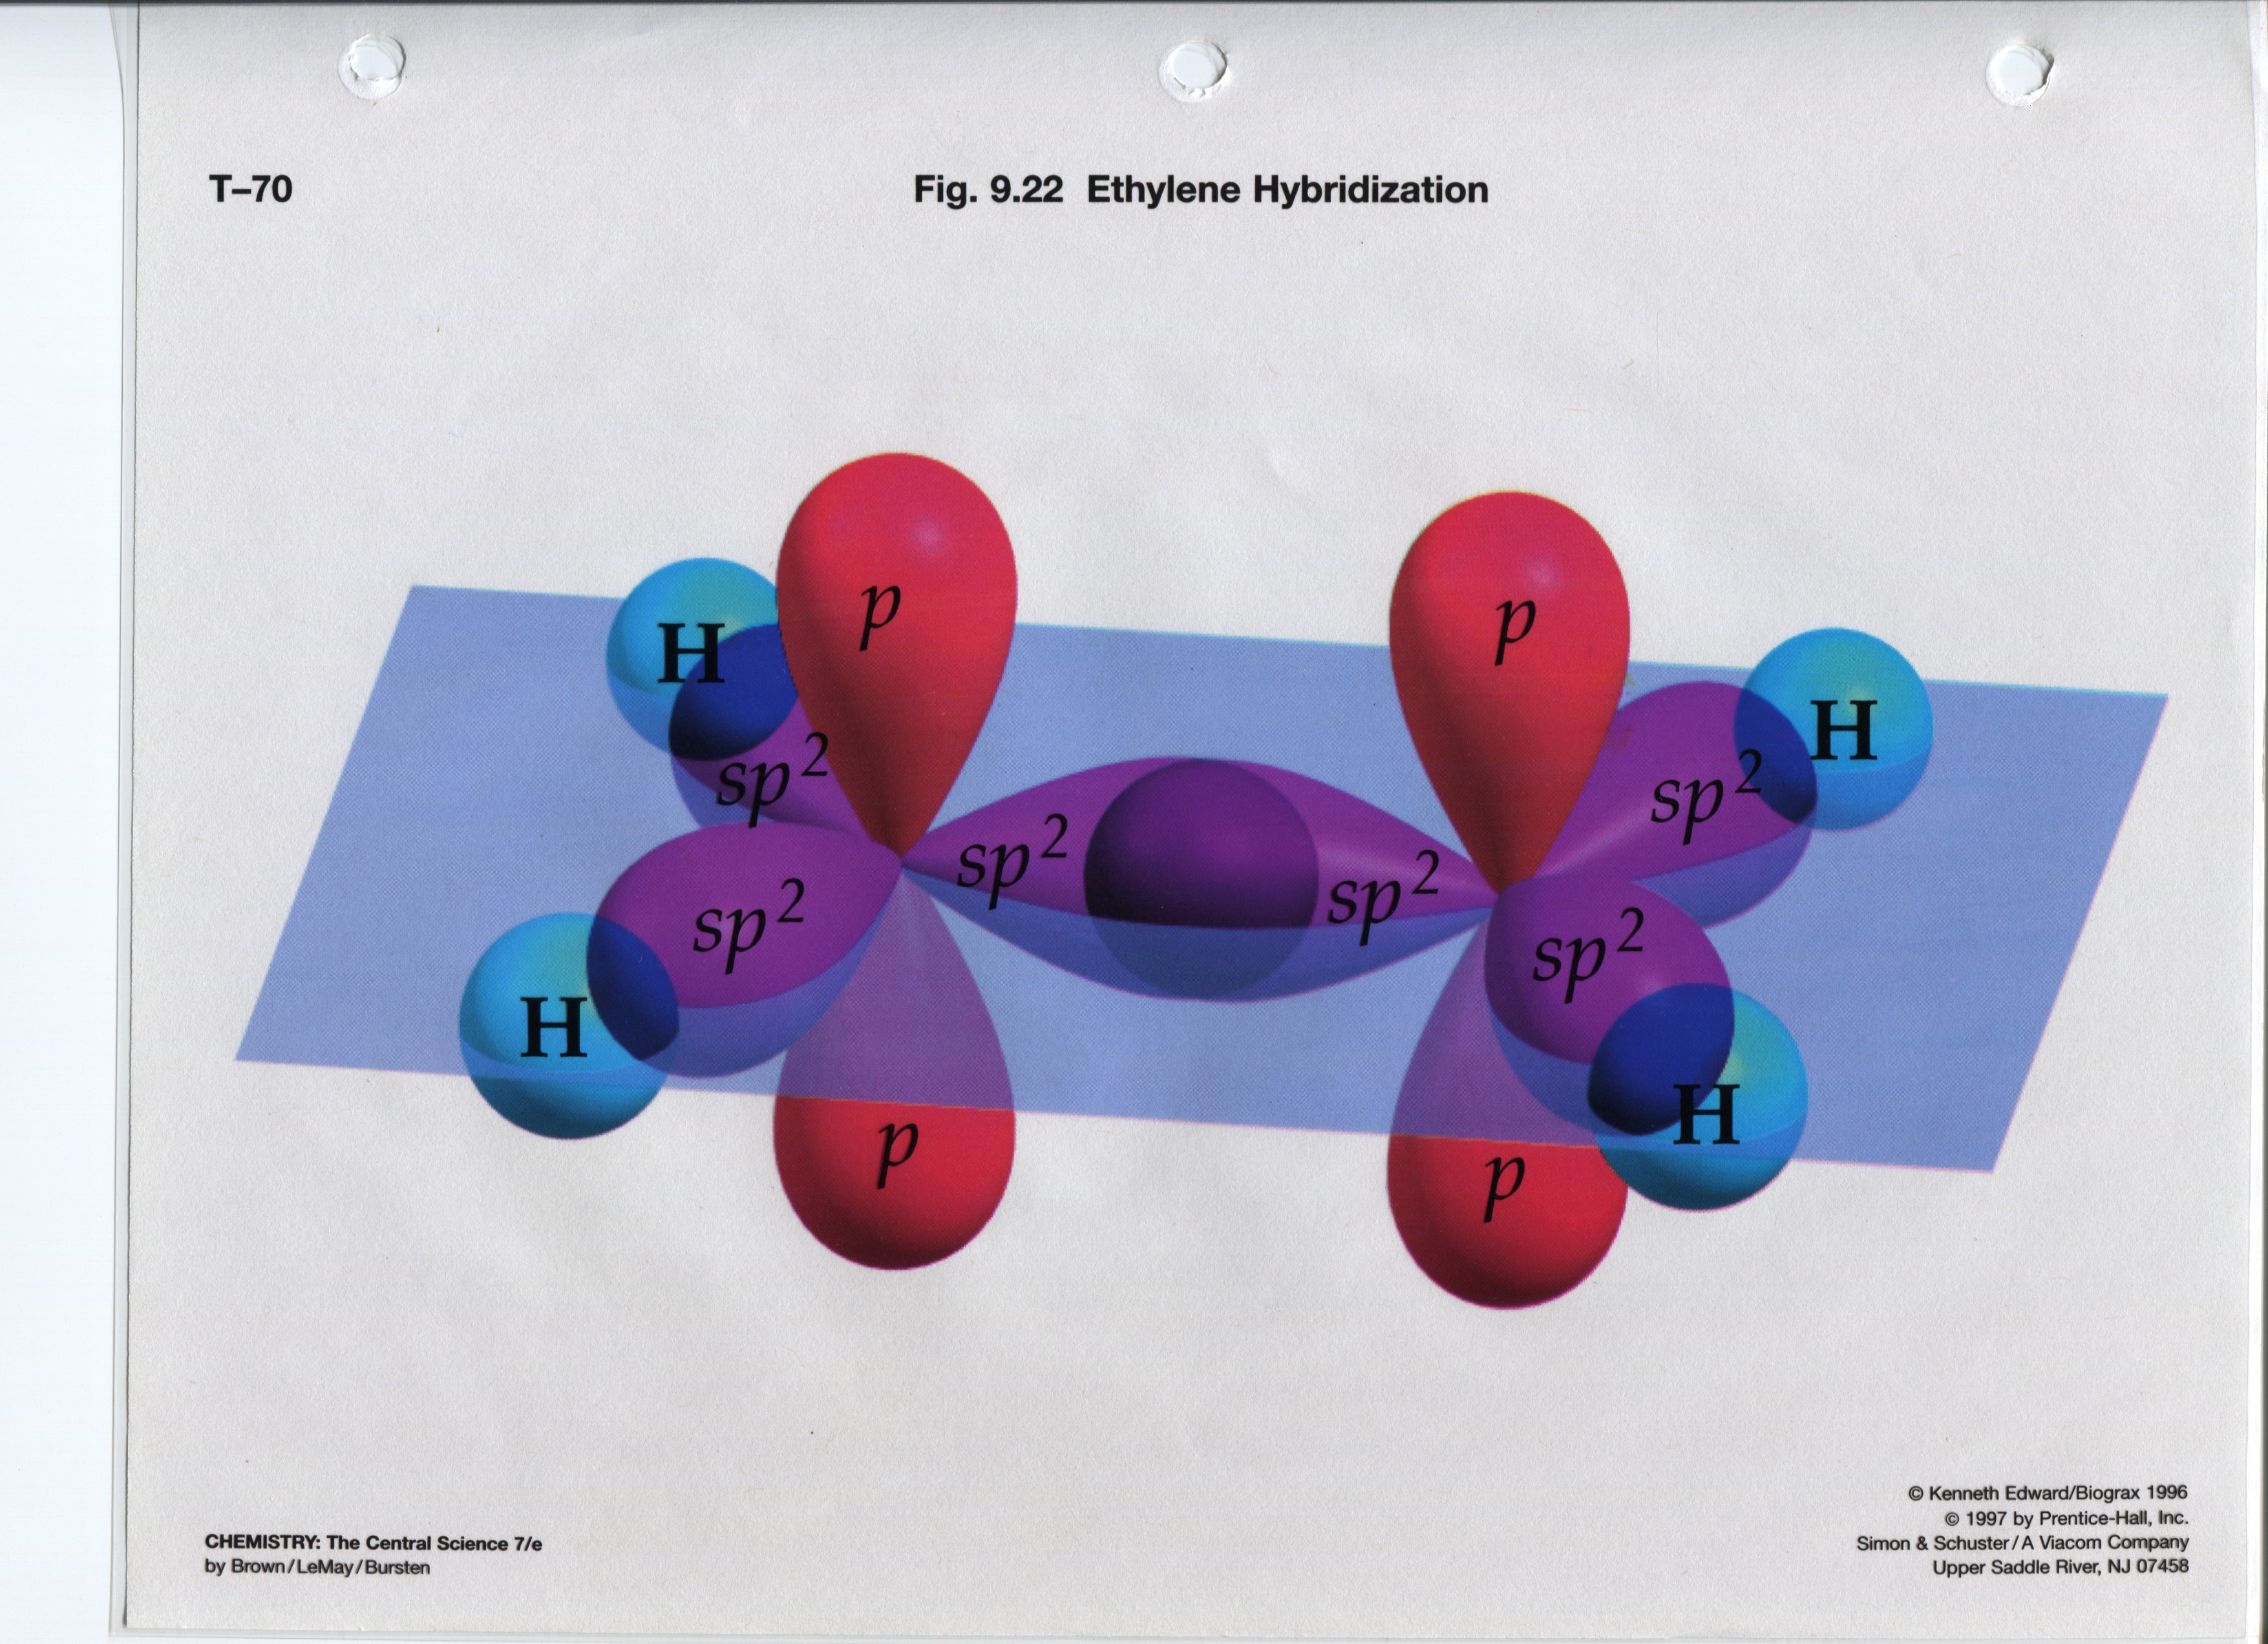 chemistry-reference com - /images/transparencies/